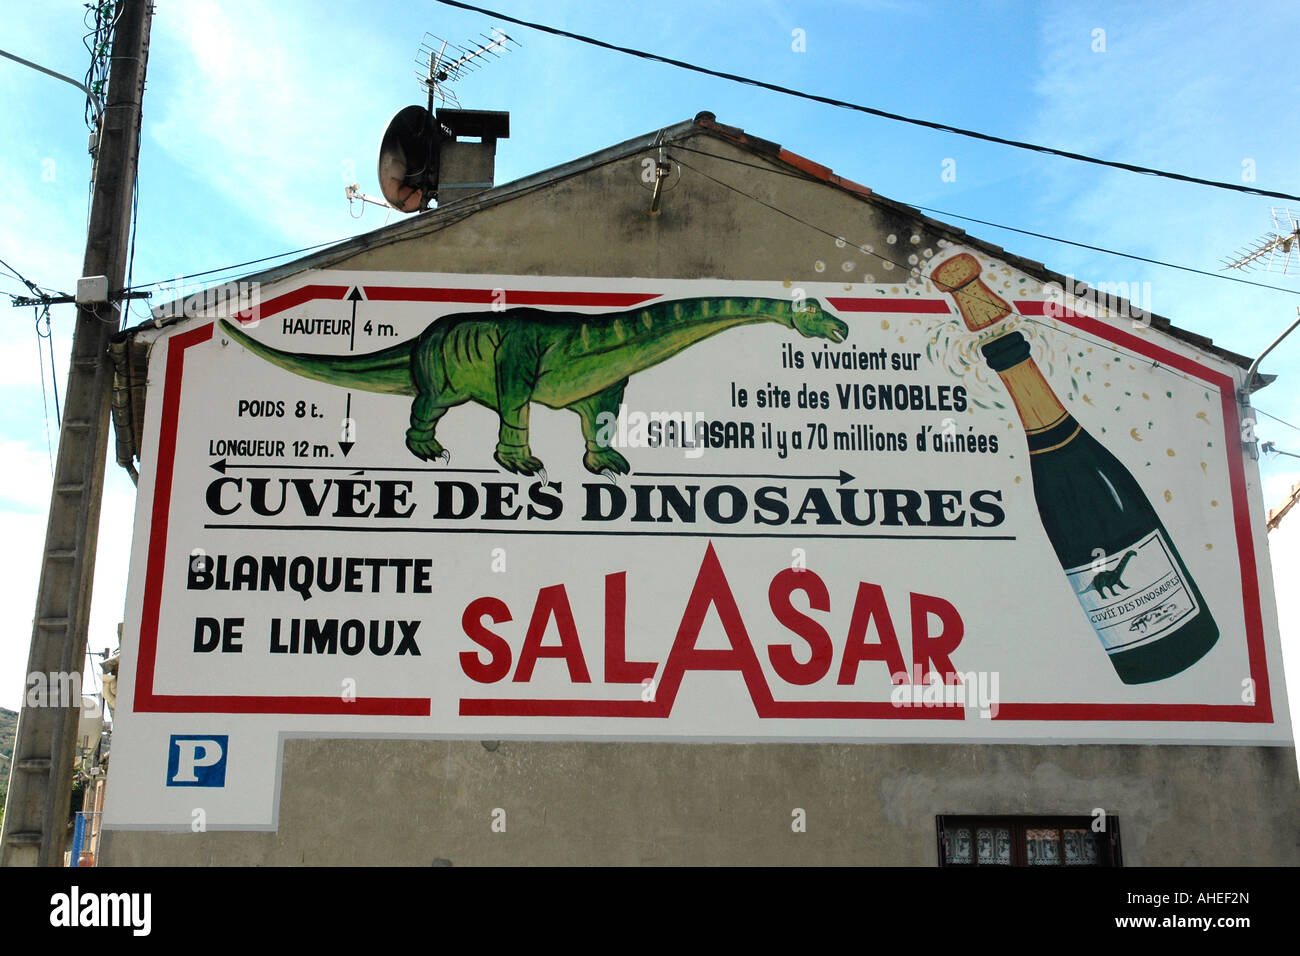 Dinosaur discoveries in Esperaza prompted dramatic promotion on a roadside wall for the local wine Blanquette de - Stock Image